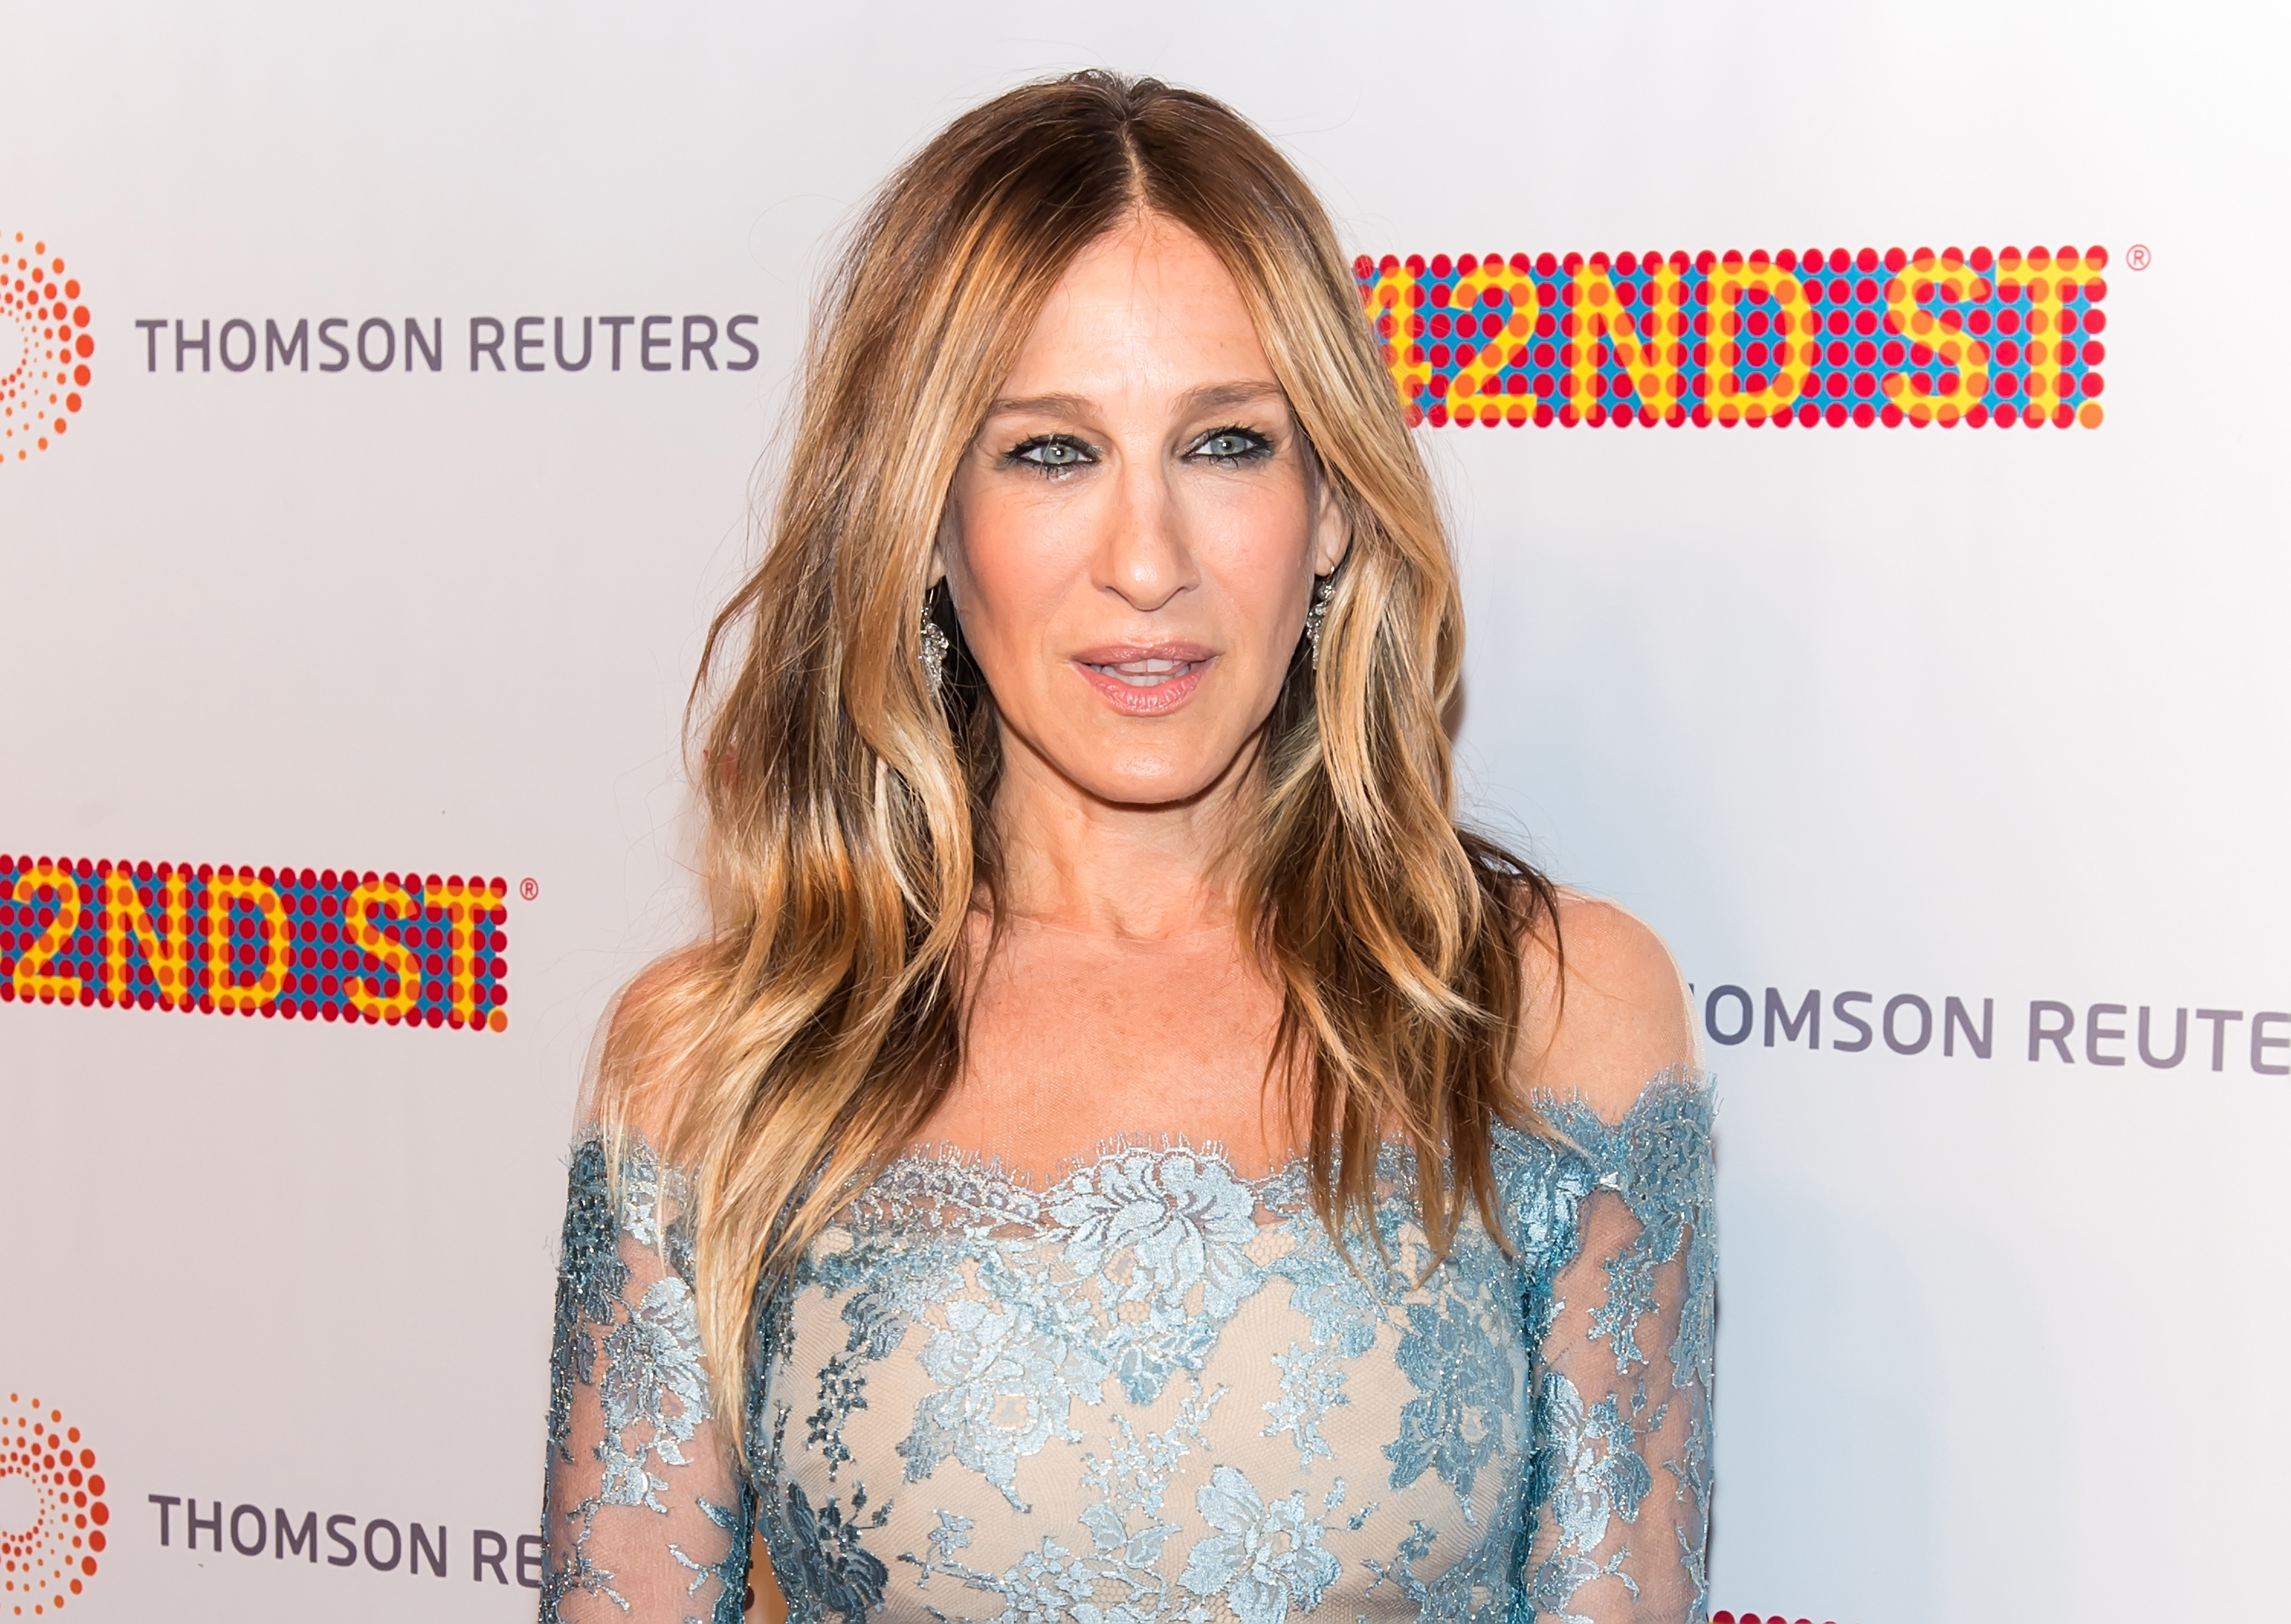 Sarah Jessica Parker made a super important statement about the EpiPen price increase